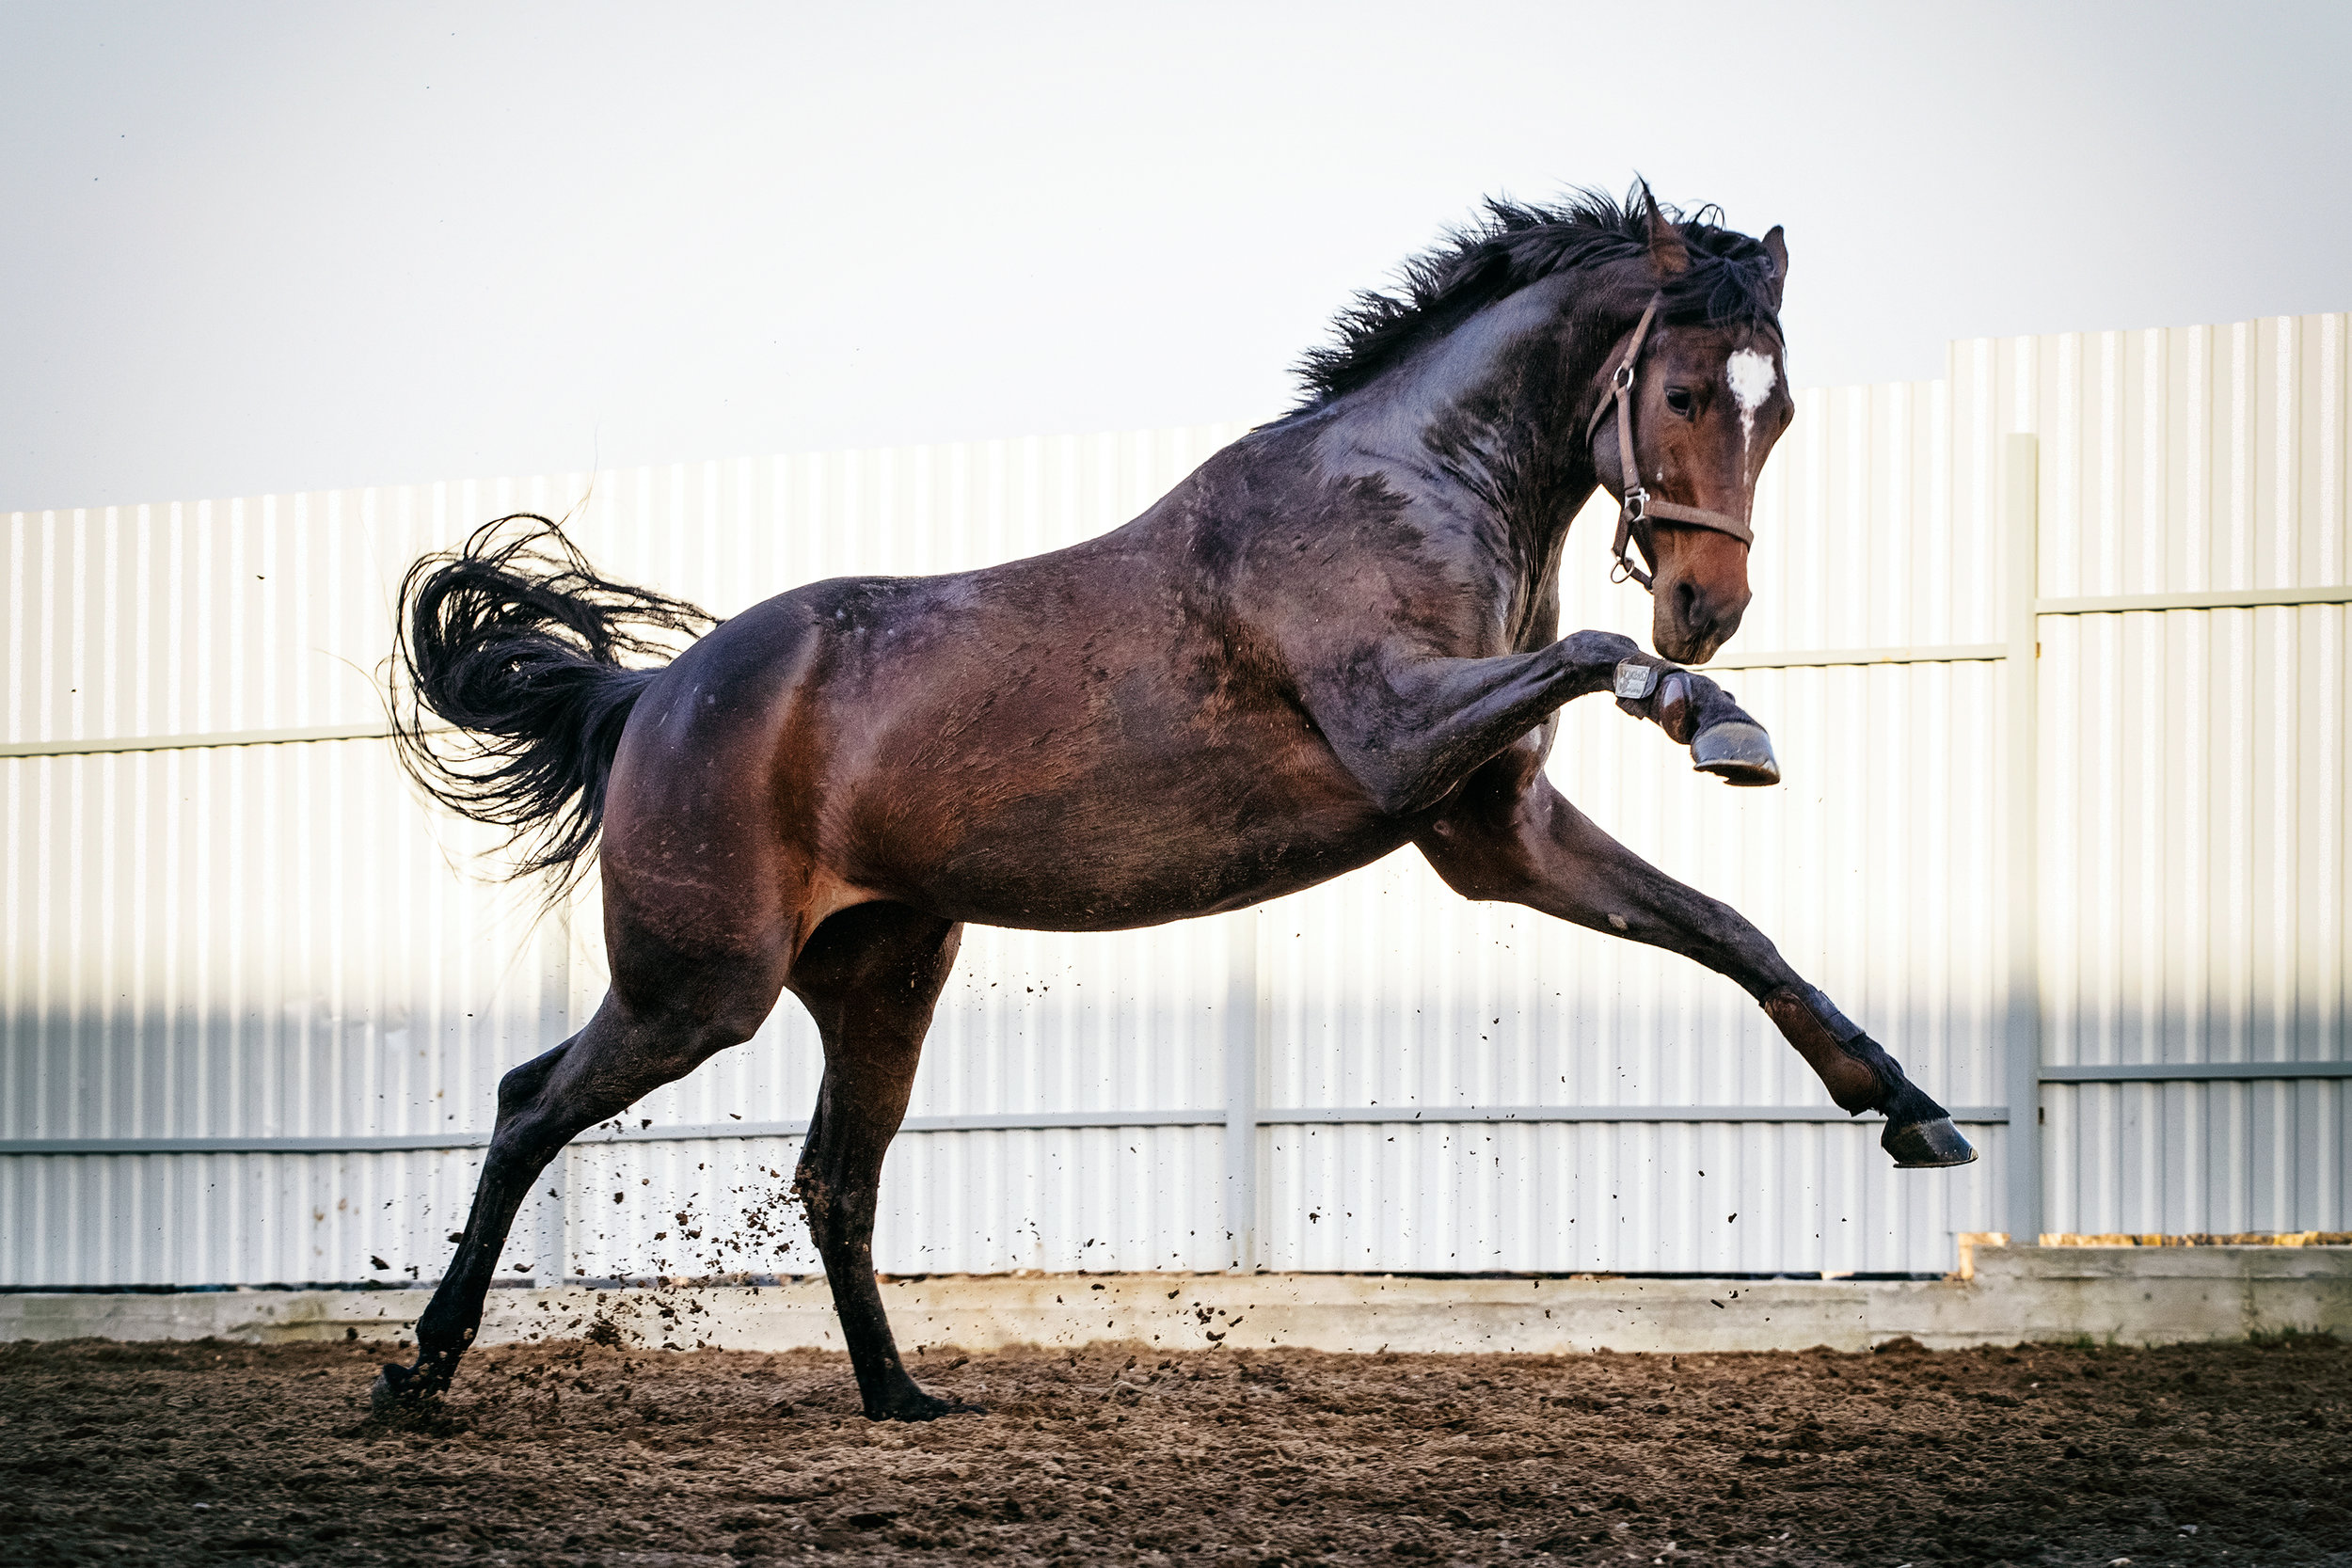 A recent study published in the Equine Veterinary Journal assessed the routine procedure of gelding and the complications associated with this procedure. The research was a retrospective study of horses castrated at the Sha Tin training complex in Hong Kong, between July 2007 and July 2012.    Hong Kong is a unique training and racing environment, and all horses training and racing there are imported, as there is no breeding in the region. Fillies are rarely imported. The majority of colts are castrated at some stage in their career, and open standing castration (OSC) is the method of choice by the vets of the Hong Kong Jockey Club (HKJC). Until now, nobody has looked at the prevalence of complications following castration of horses at the HKJC. This recently published study aimed to describe the prevalence and severity of complications in the 30 days following castration.    Reasons for gelding a racehorse in training    Most trainers perceive geldings as easier to train than colts, and if the horse has not shown enough ability for a stud career to beckon, there is little to lose by gelding. In Hong Kong, due to the unique environment the horses live in, there is an added incentive to geld these horses sooner rather than later. Once gelded, their management becomes significantly more straightforward.    Castration Method Options    Three surgical techniques are commonly used for equine castration: 1) open, in which the parietal tunic surrounding the testicle is incised and, usually, retained; 2) closed, where the portion of the parietal tunic surrounding the testis and distal spermatic cord is removed, and 3) half closed, where an incision is made through the exposed parietal tunic at the cranial end of the testis or distal end of the spermatic cord allowing the testis and part of the spermatic vasculature to be prolapsed through the incision prior to removal.    In most cases, racehorse castration is done standing via the open technique under local anesthetic, wit